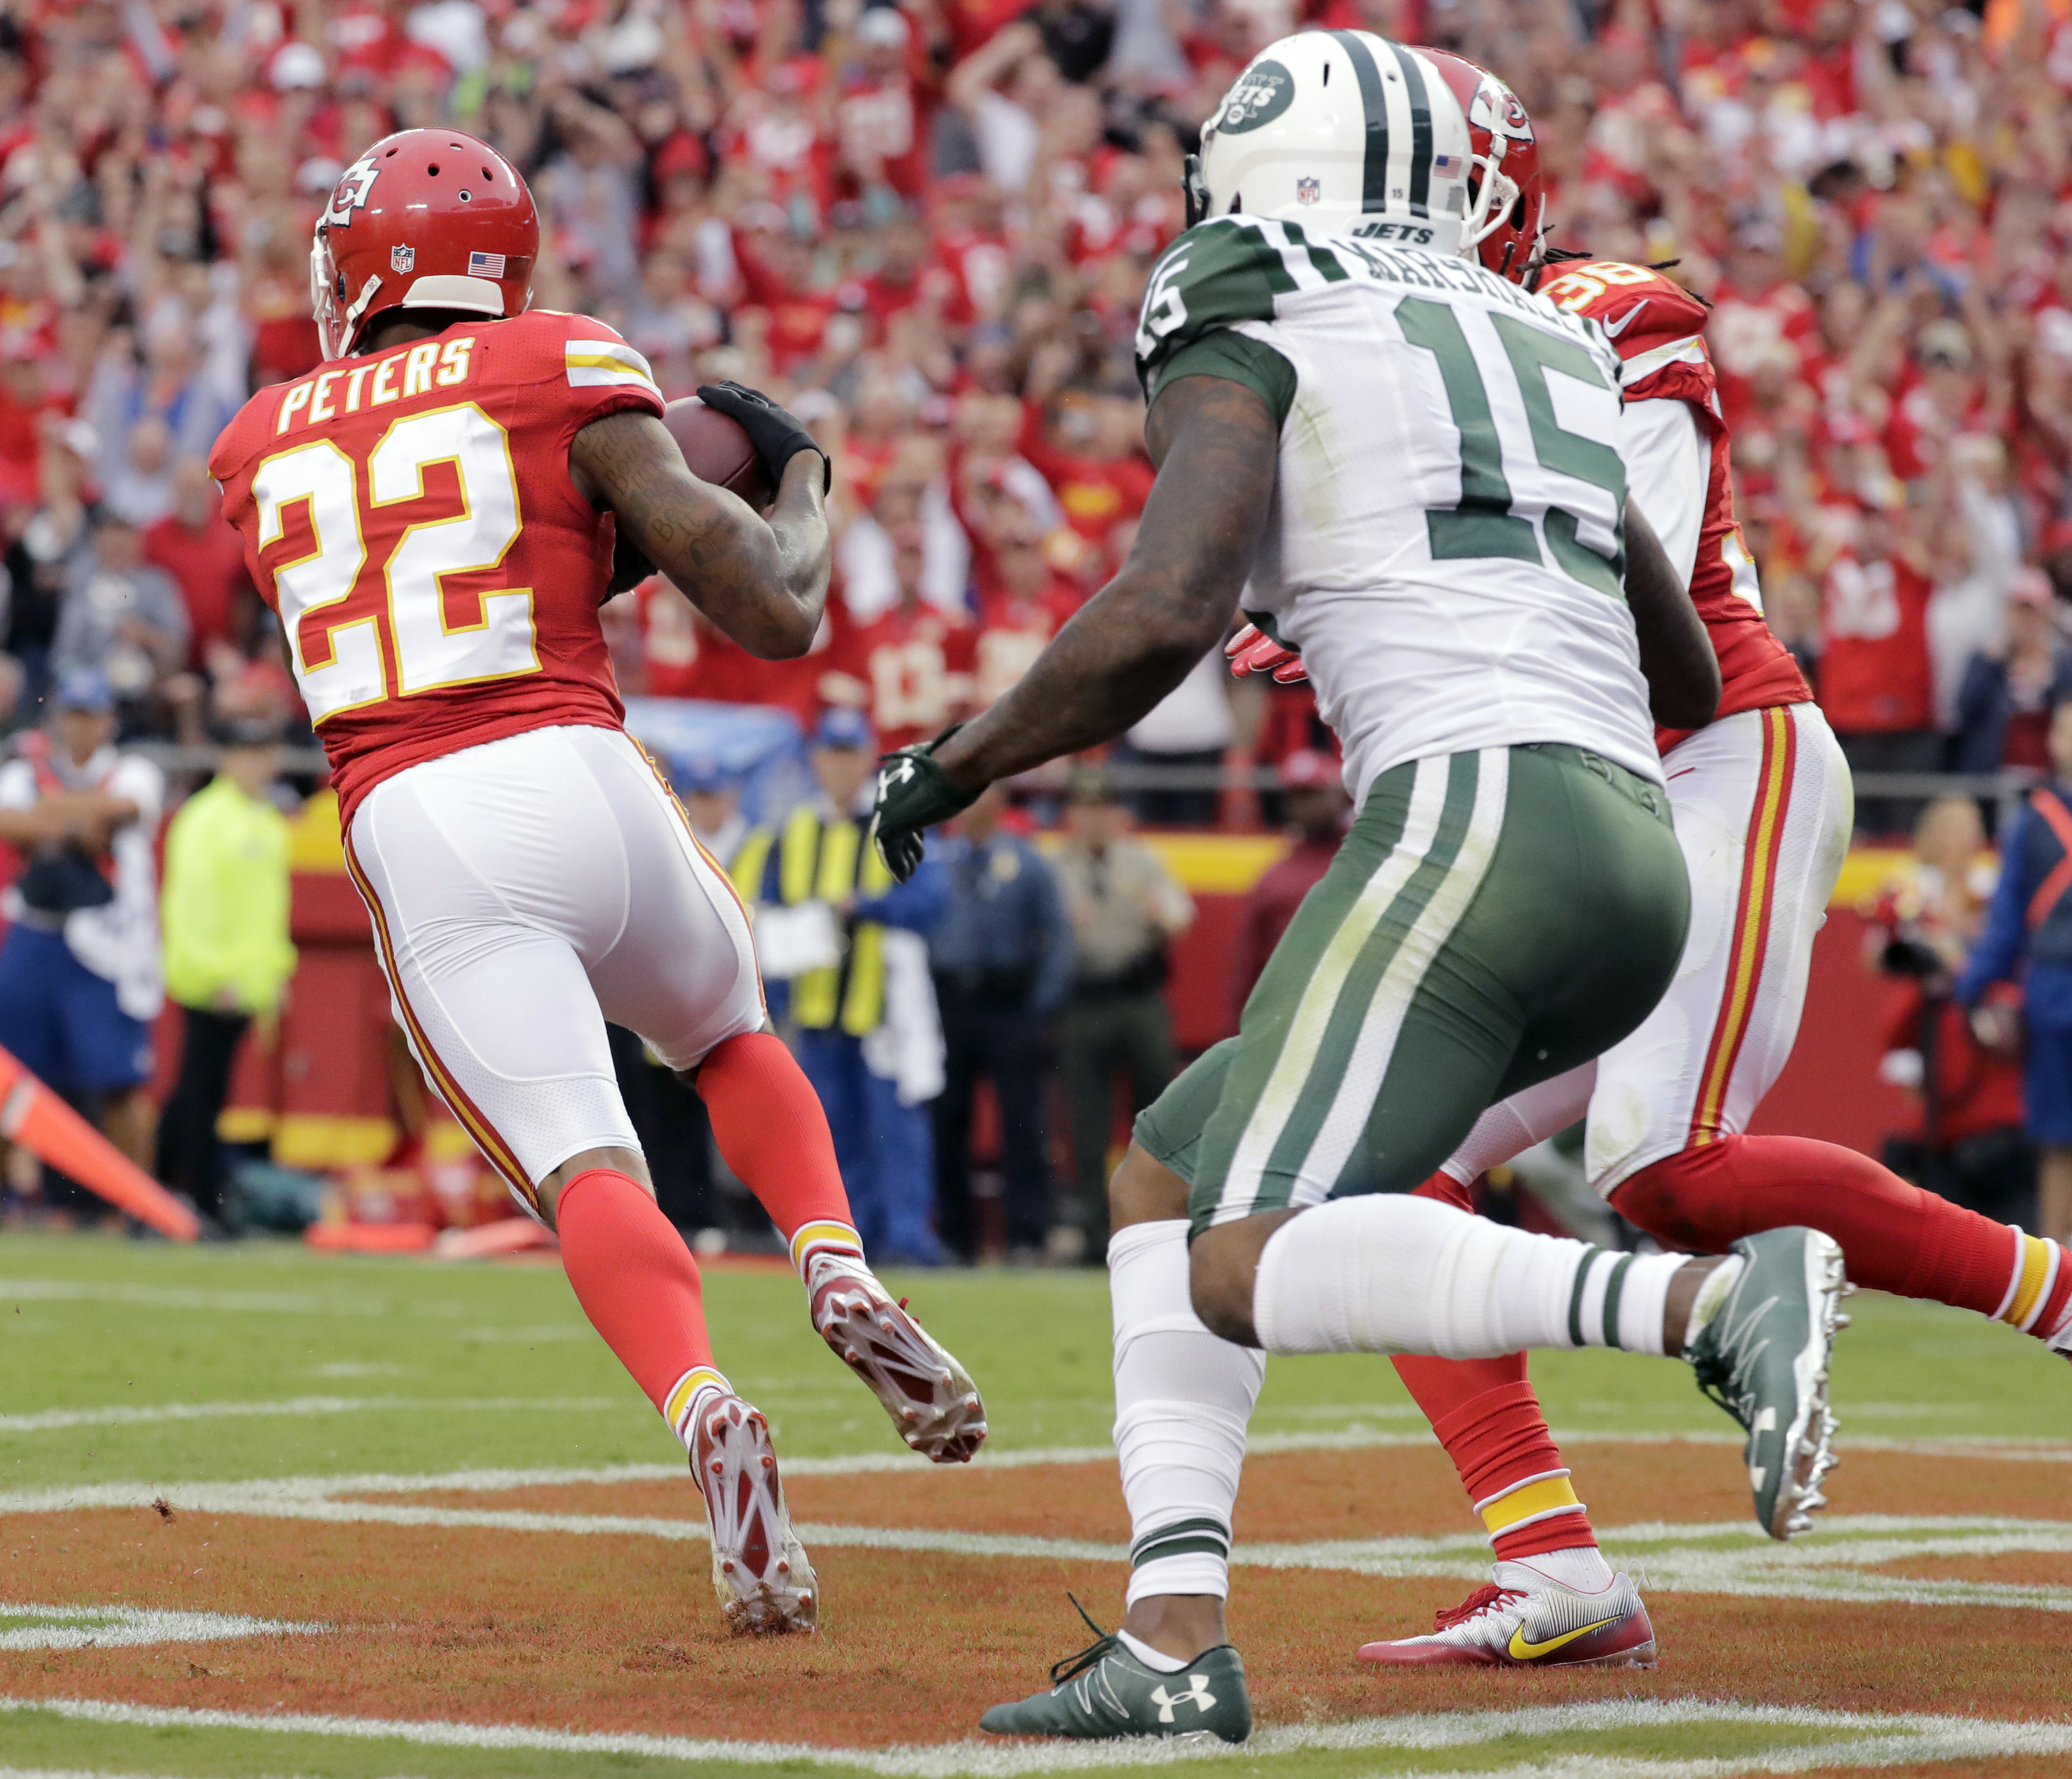 Kansas City Chiefs defensive back Marcus Peters (22) intercepts a pass in front of New York Jets wide receiver Brandon Marshall (15) in the end zone, during the second half of an NFL football game in Kansas City, Mo., Sunday, Sept. 25, 2016. (AP Photo/Cha